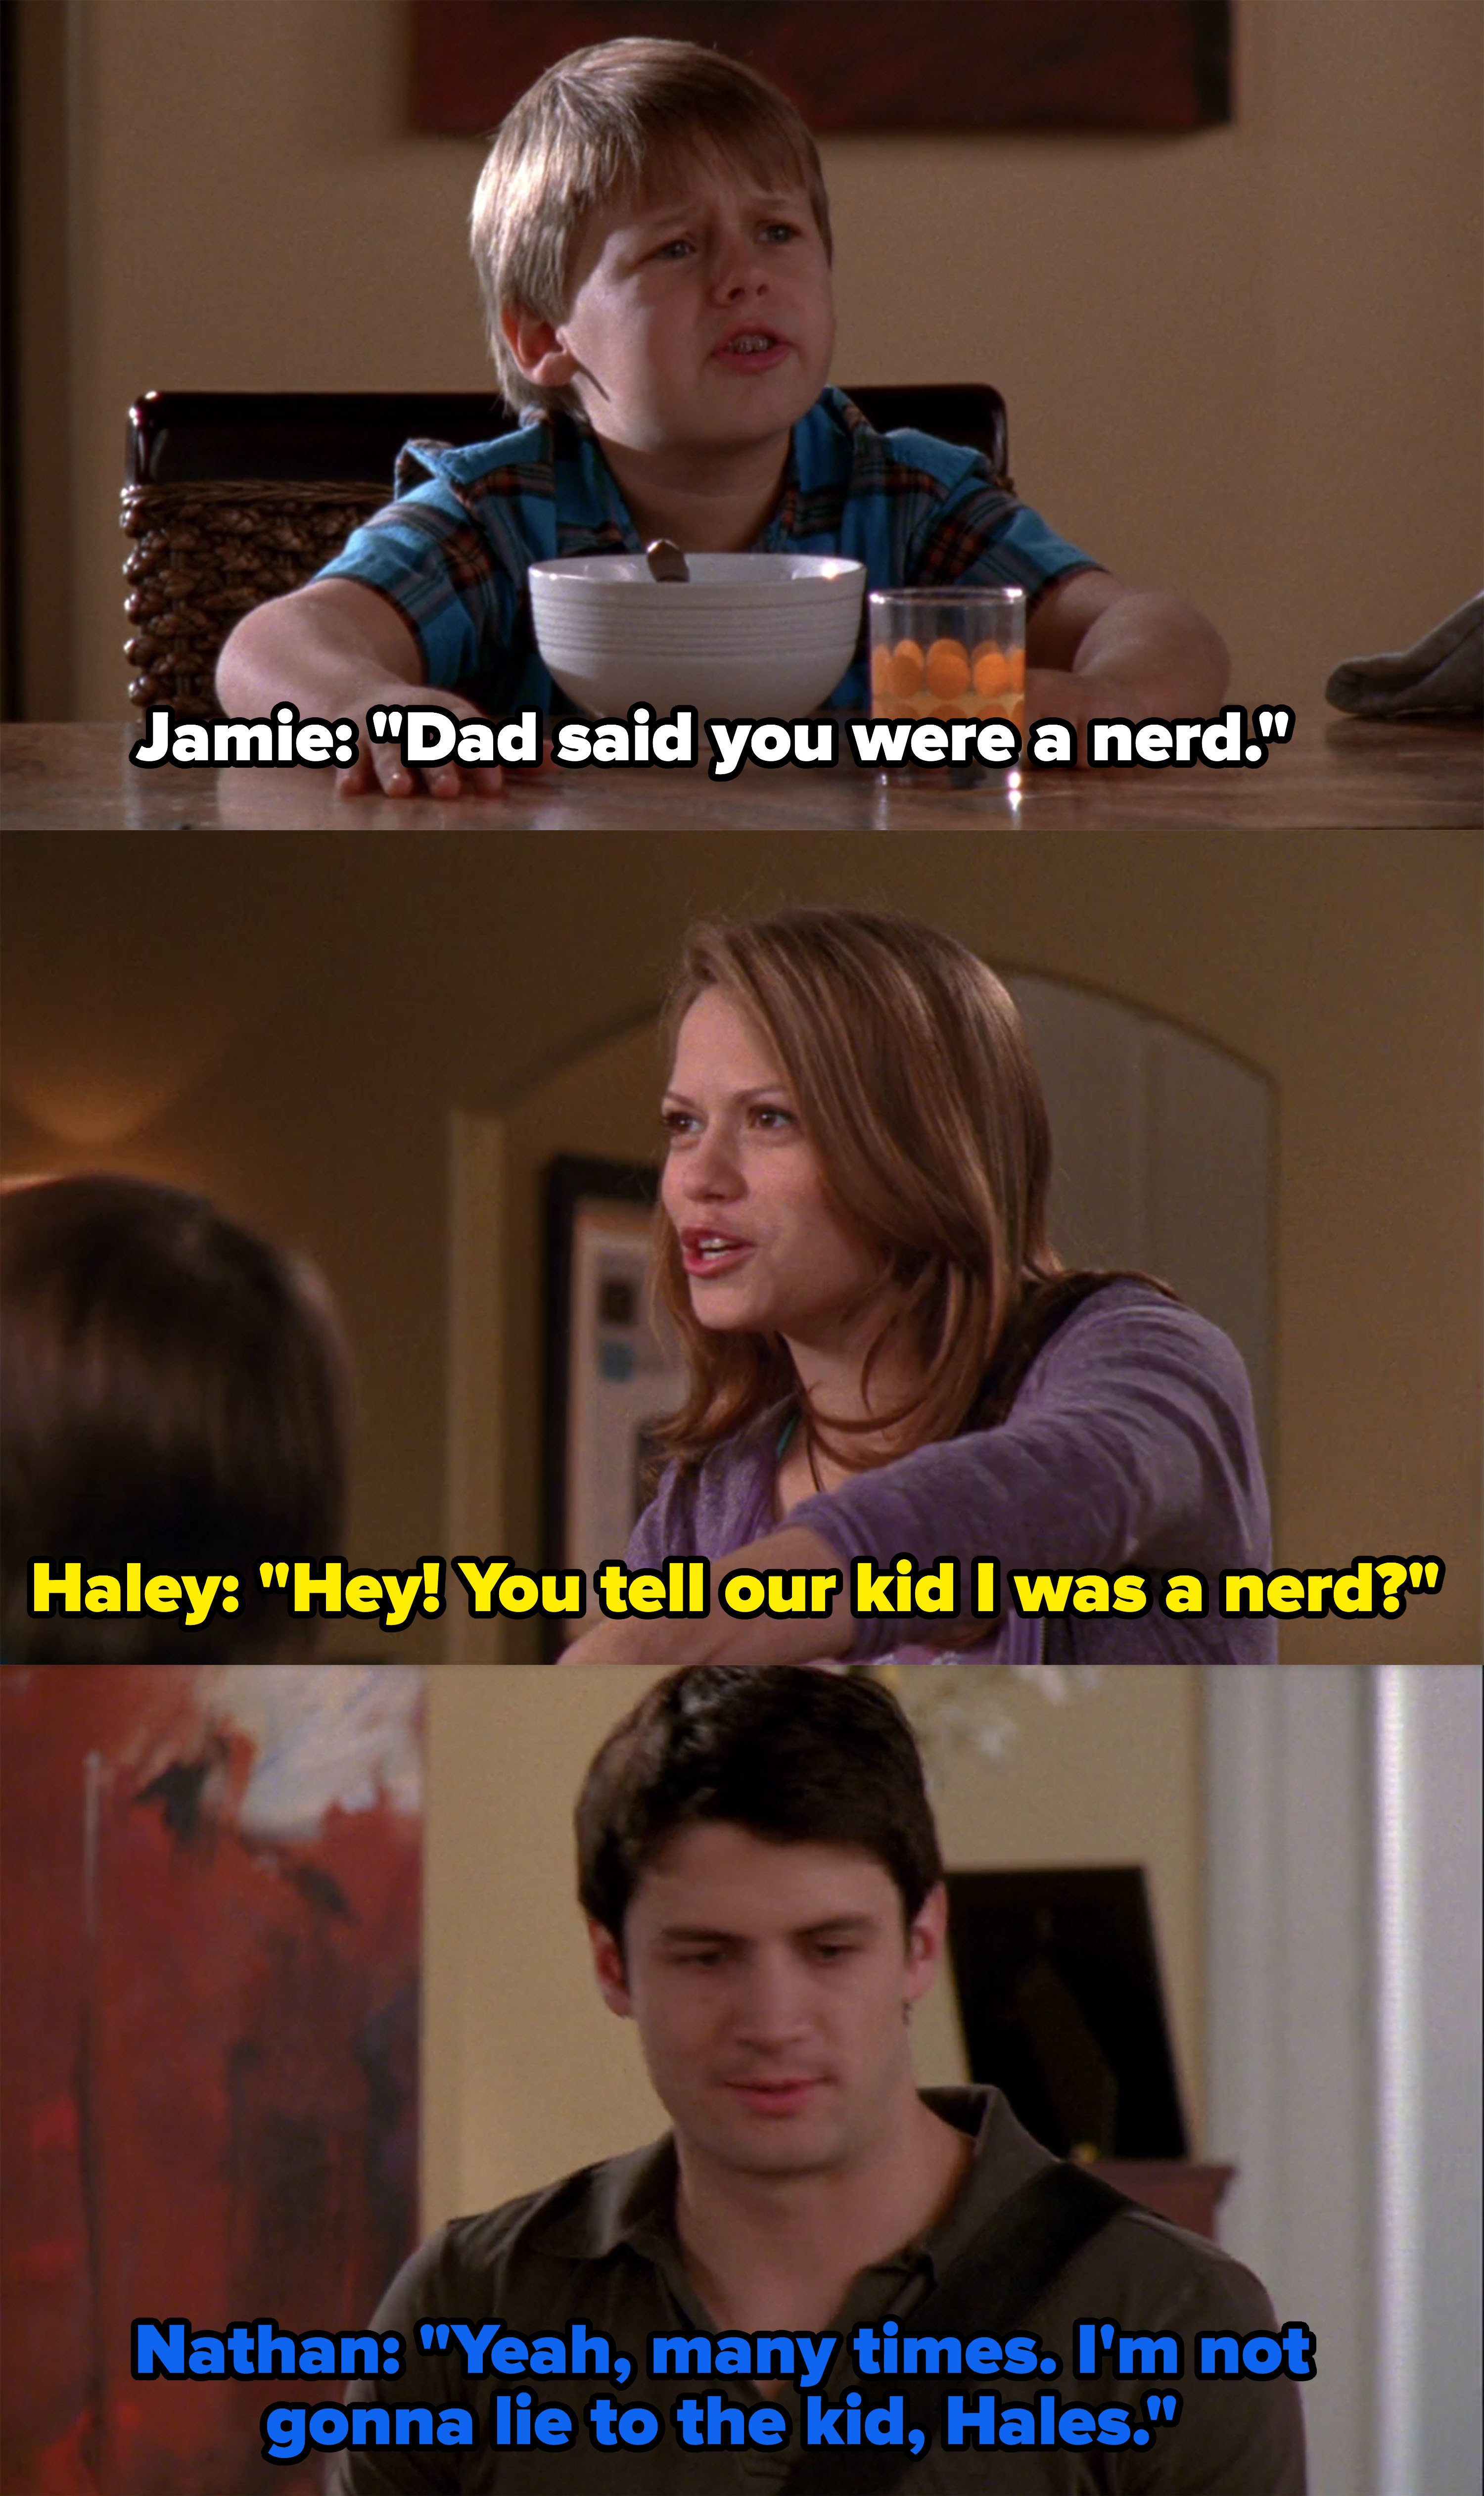 Jamie says Nathan told him Haley was a nerd in school